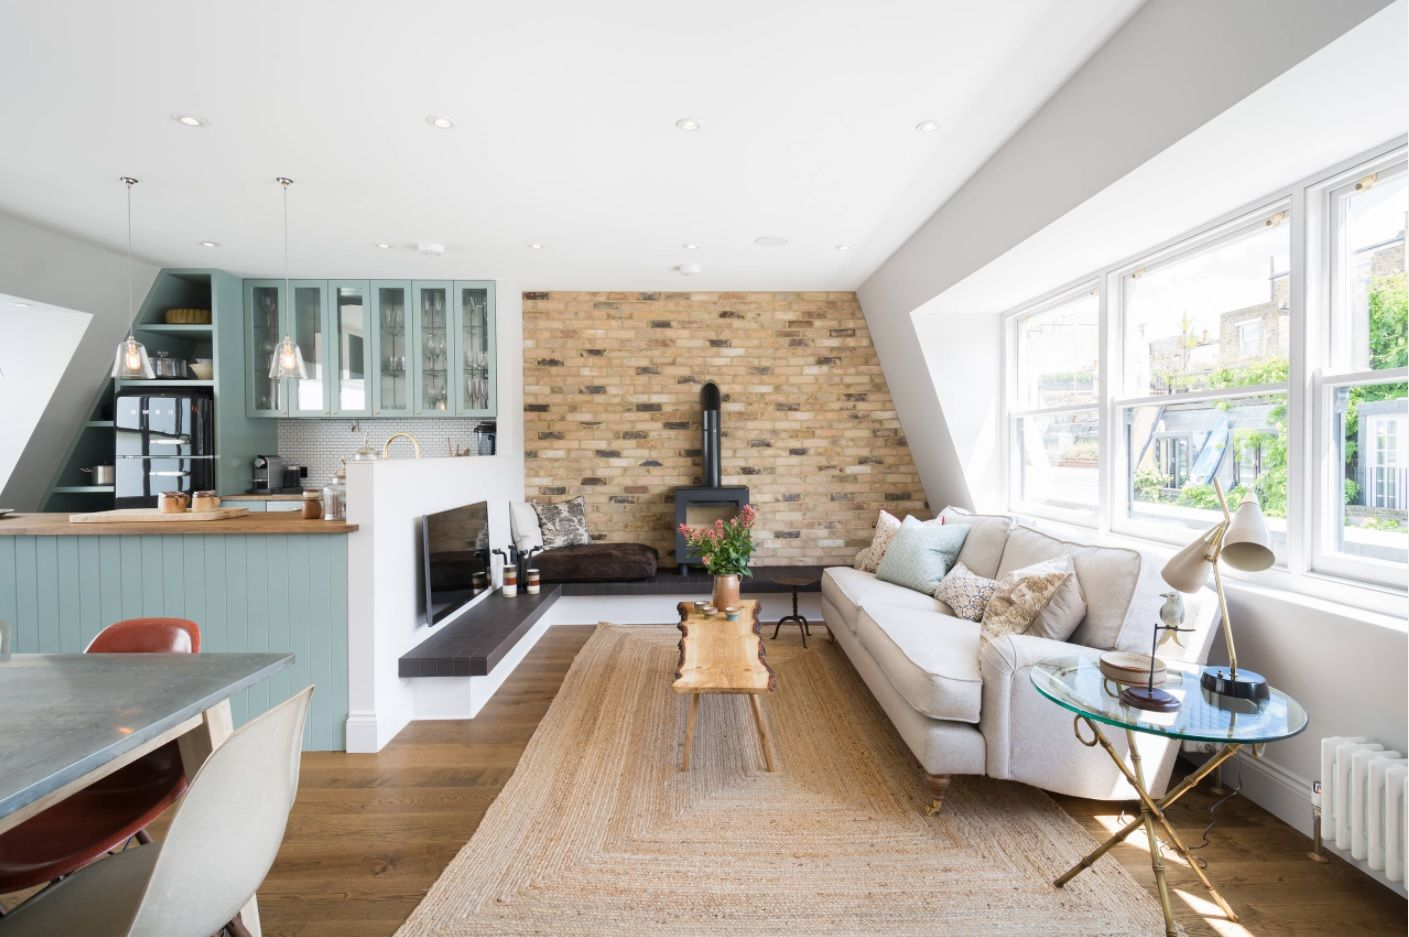 Mosaic accent wall with the fireplace and the combined kitchen with dining room open design